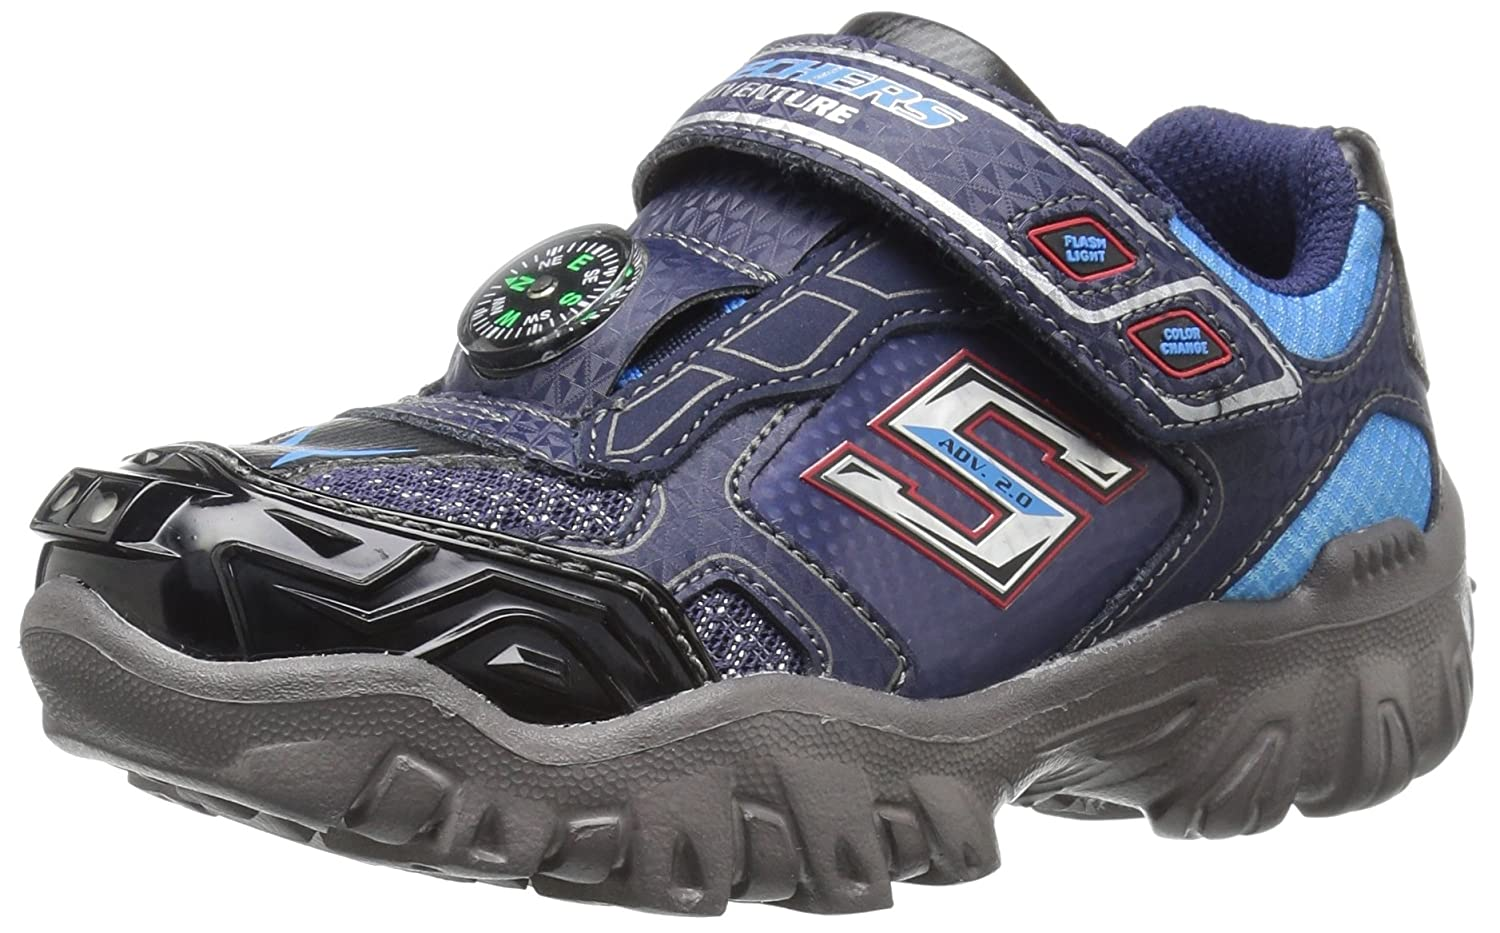 Skechers Kids Damager III Adventure Extreme Sneaker (Little Kid/Toddler) 90491L